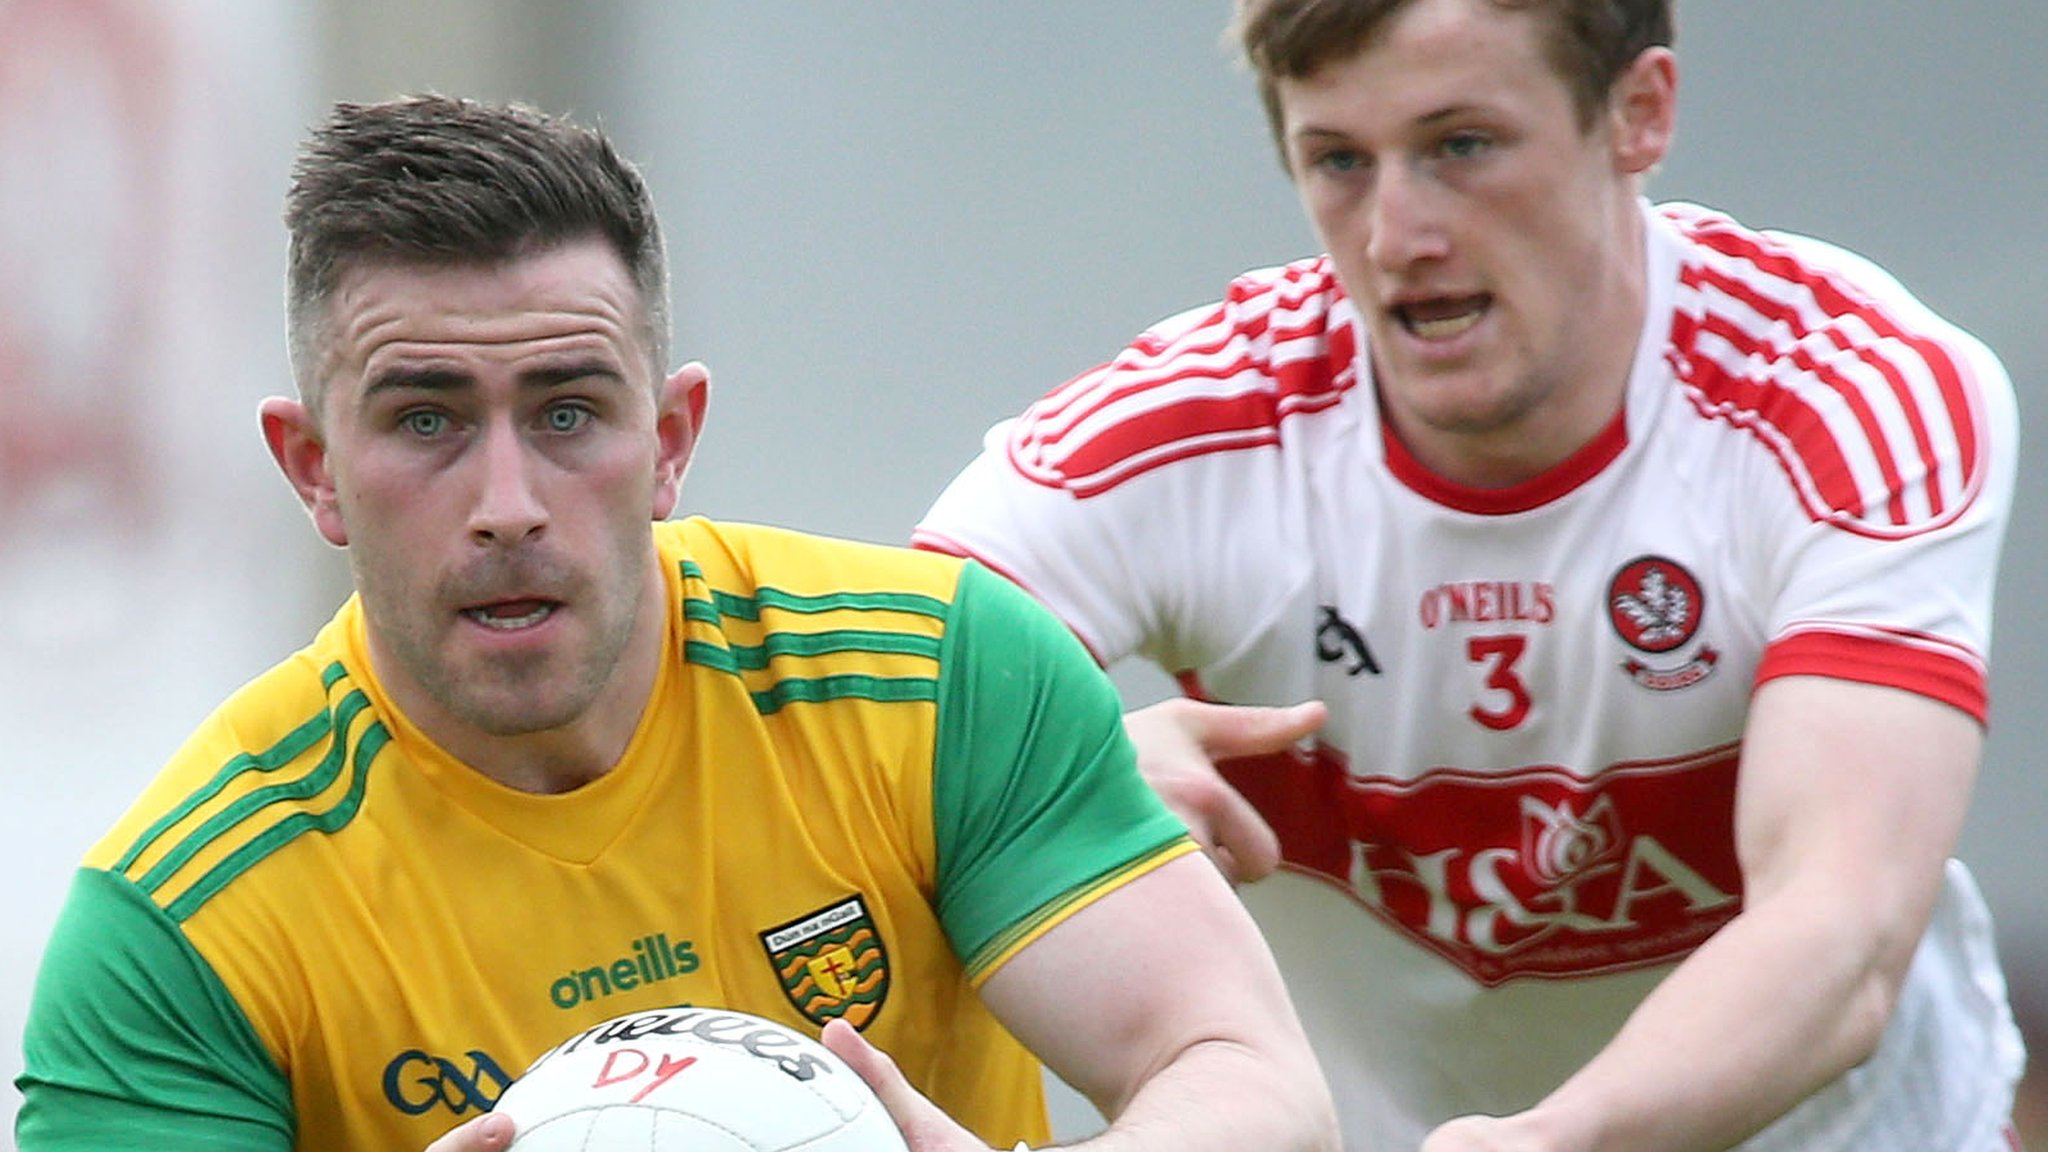 Ulster SFC: Derry 0-16 Donegal 2-16